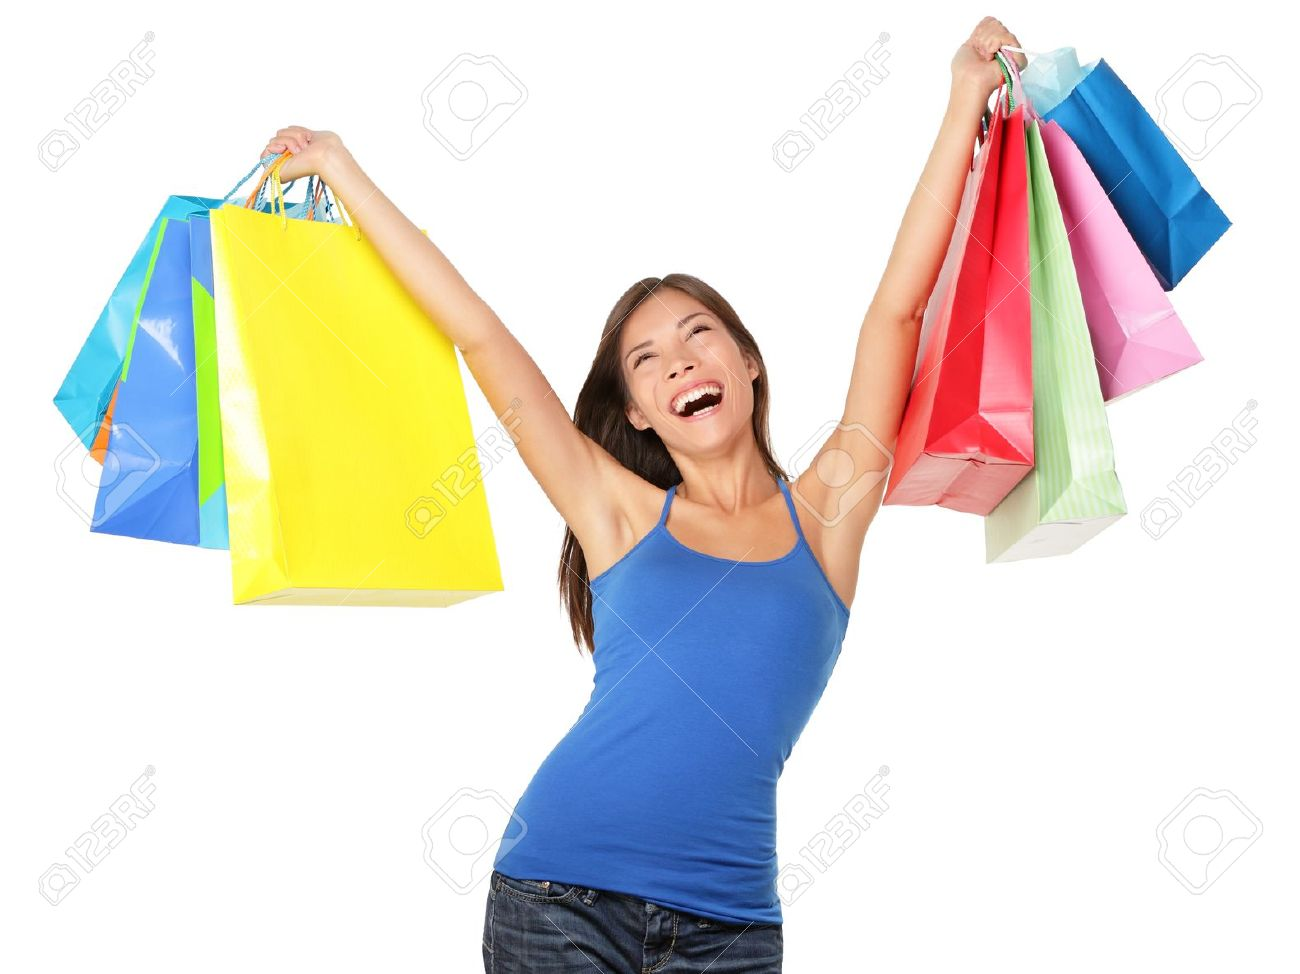 807d17539e753 Happy shopping woman excited and cheerful in joyful bliss. Shopper holding  many colorful shopping bags